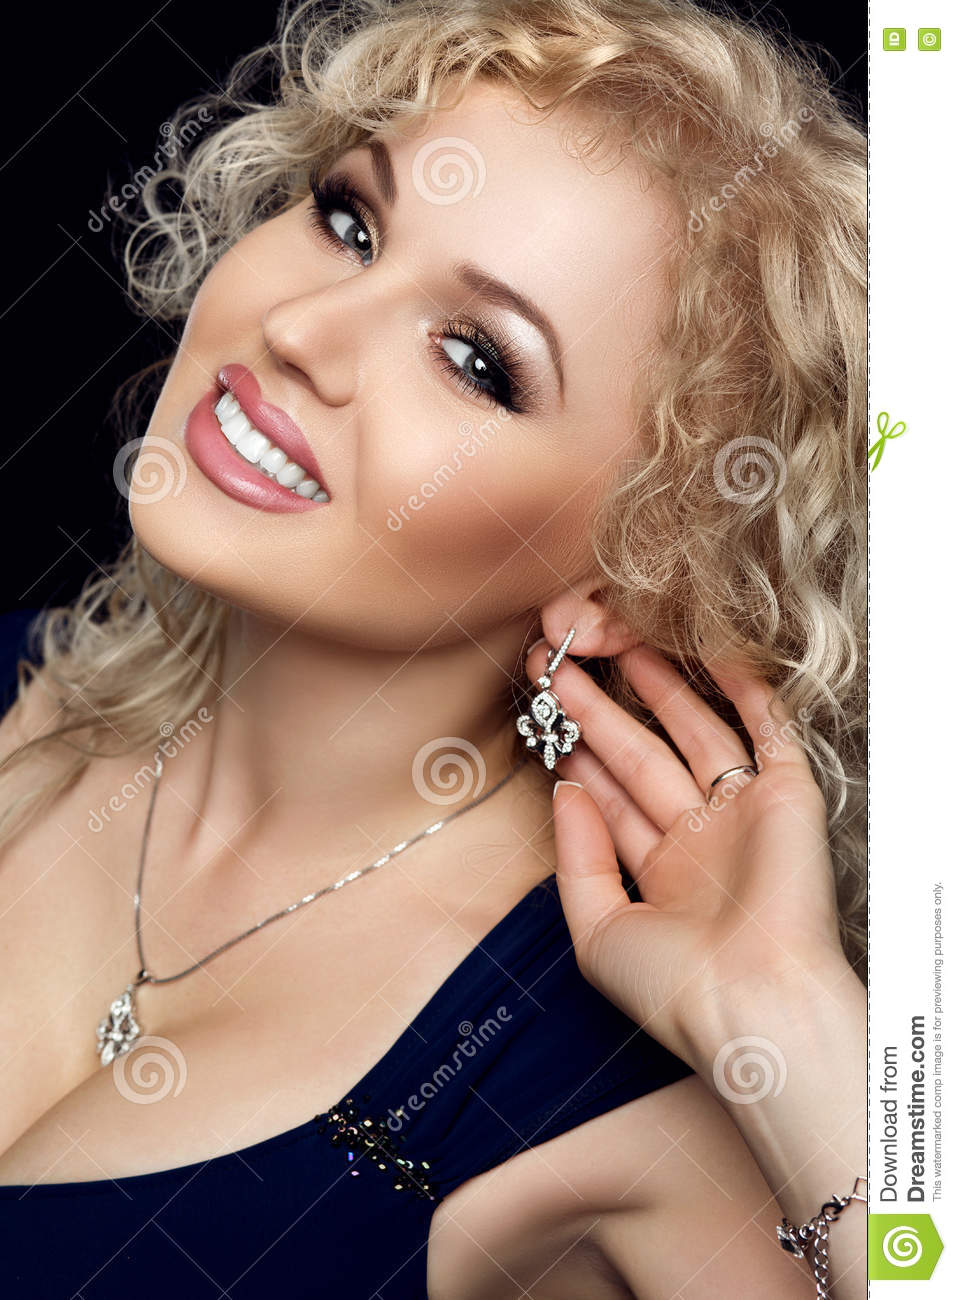 Studio portrait of gorgeous blonde woman smiling, darling necklace on her neck, earrings with precious stones touched by